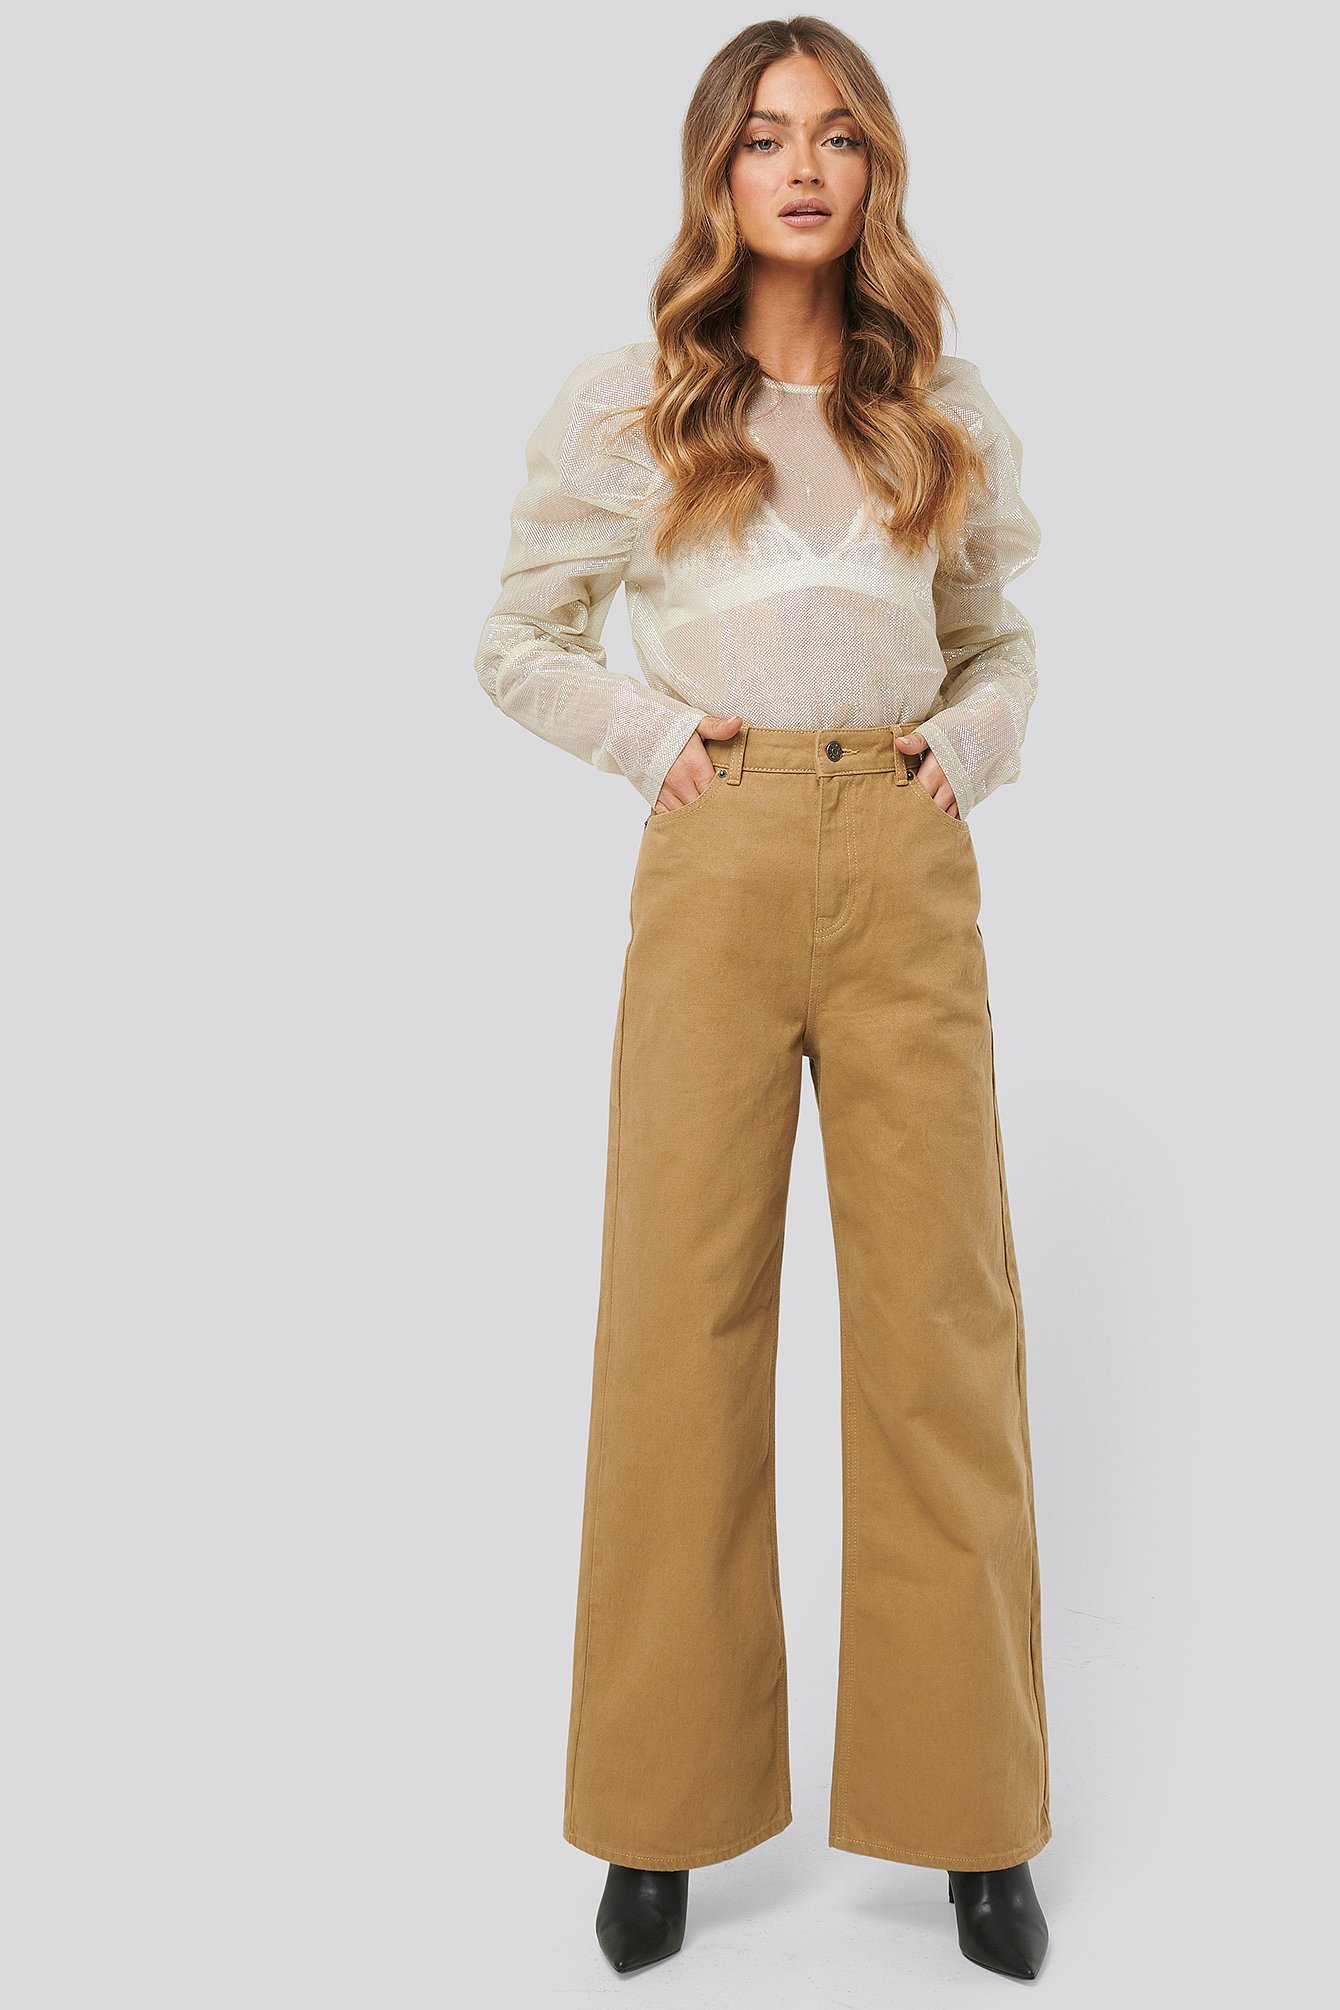 Beige Wide Leg High Waisted Jeans